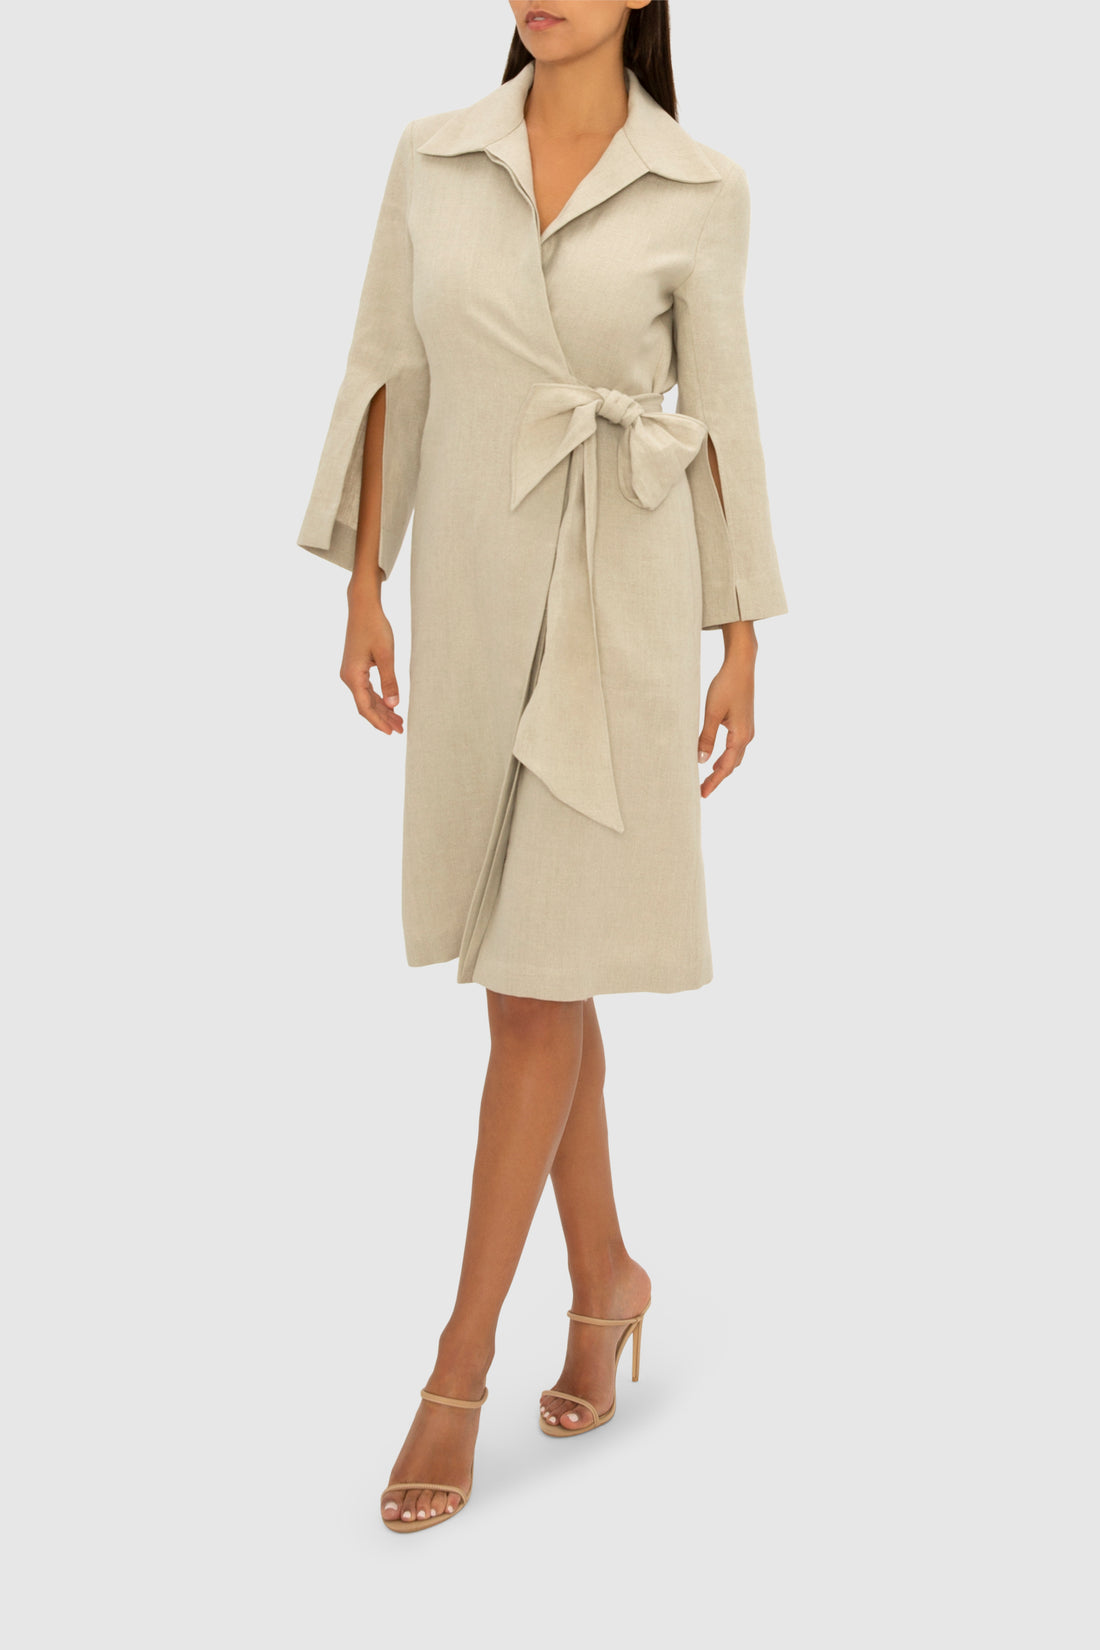 FLAX LINEN WORK OR PLAY WRAP DRESS